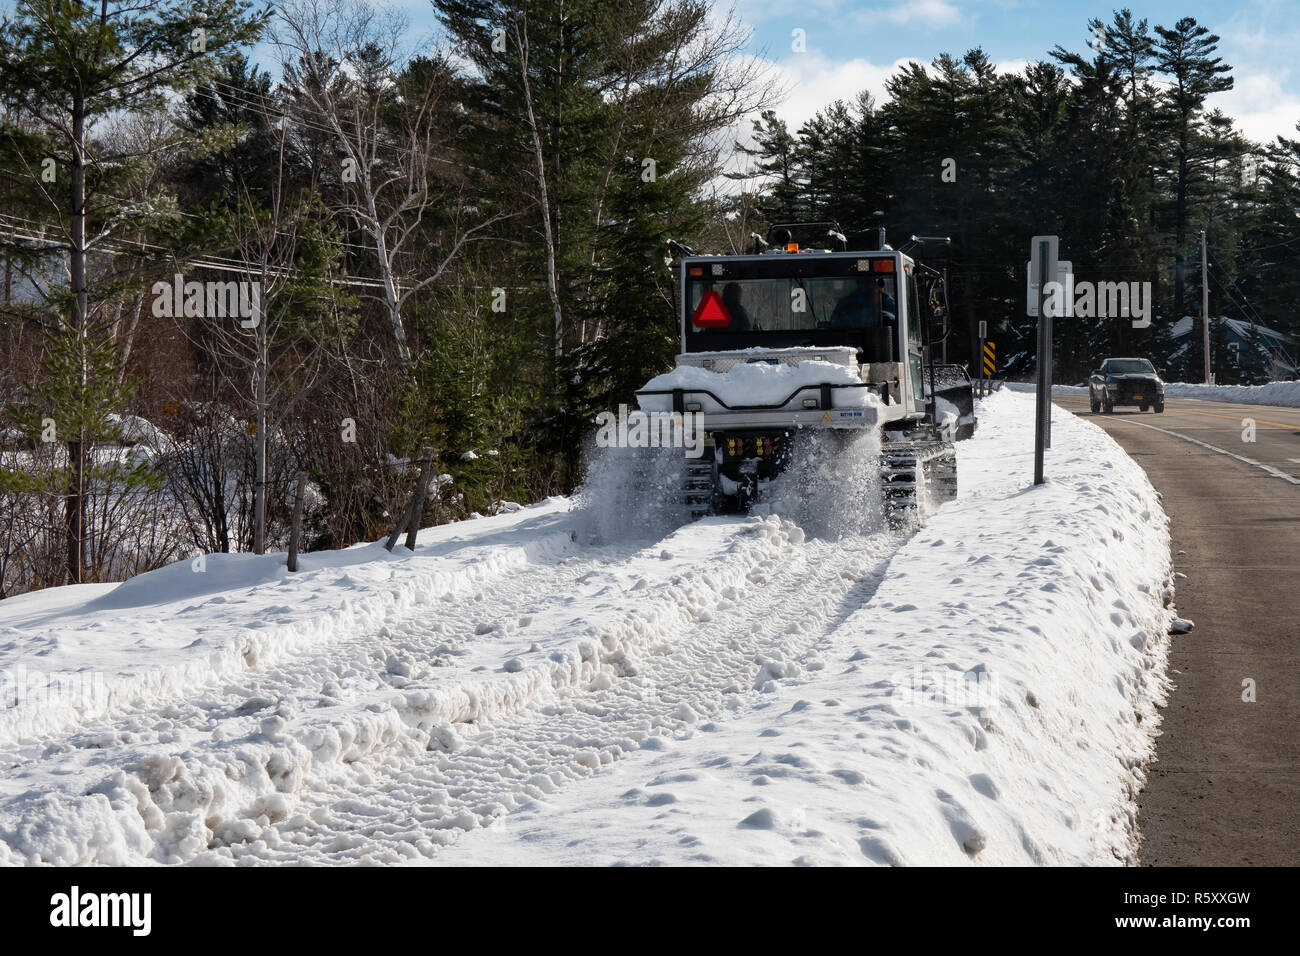 A Prinoth  Husky snow groomer driving down the sidewalk, part of a snowmobile trail, in Speculator, NY USA in the Adirondacks Park. - Stock Image